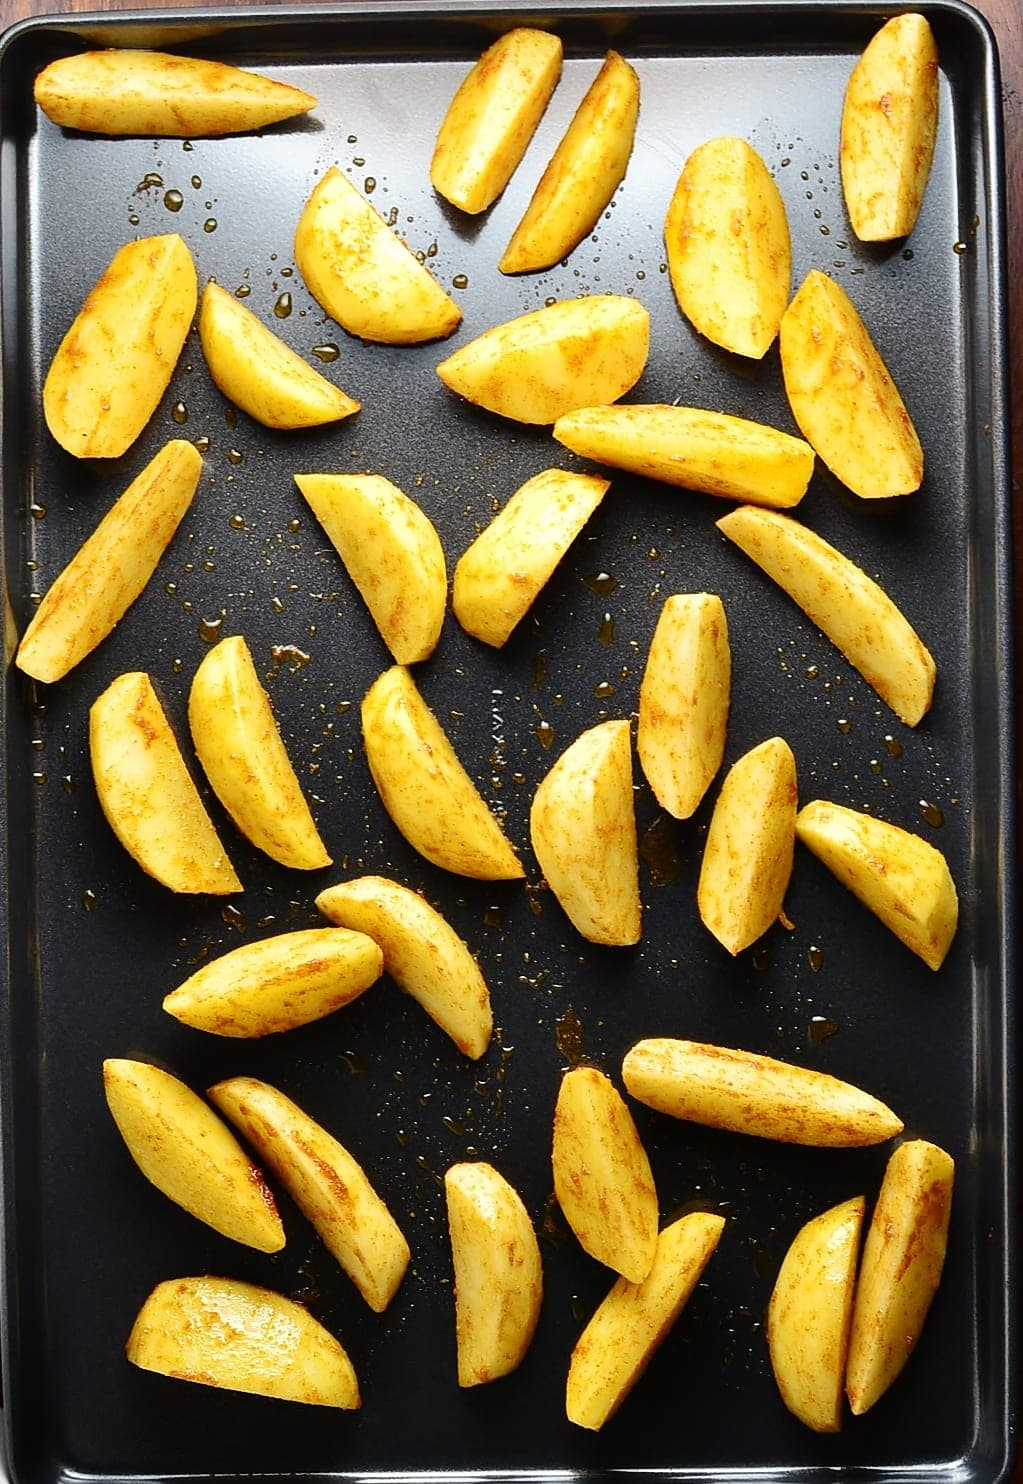 Top down view of potato wedges on top of tray.